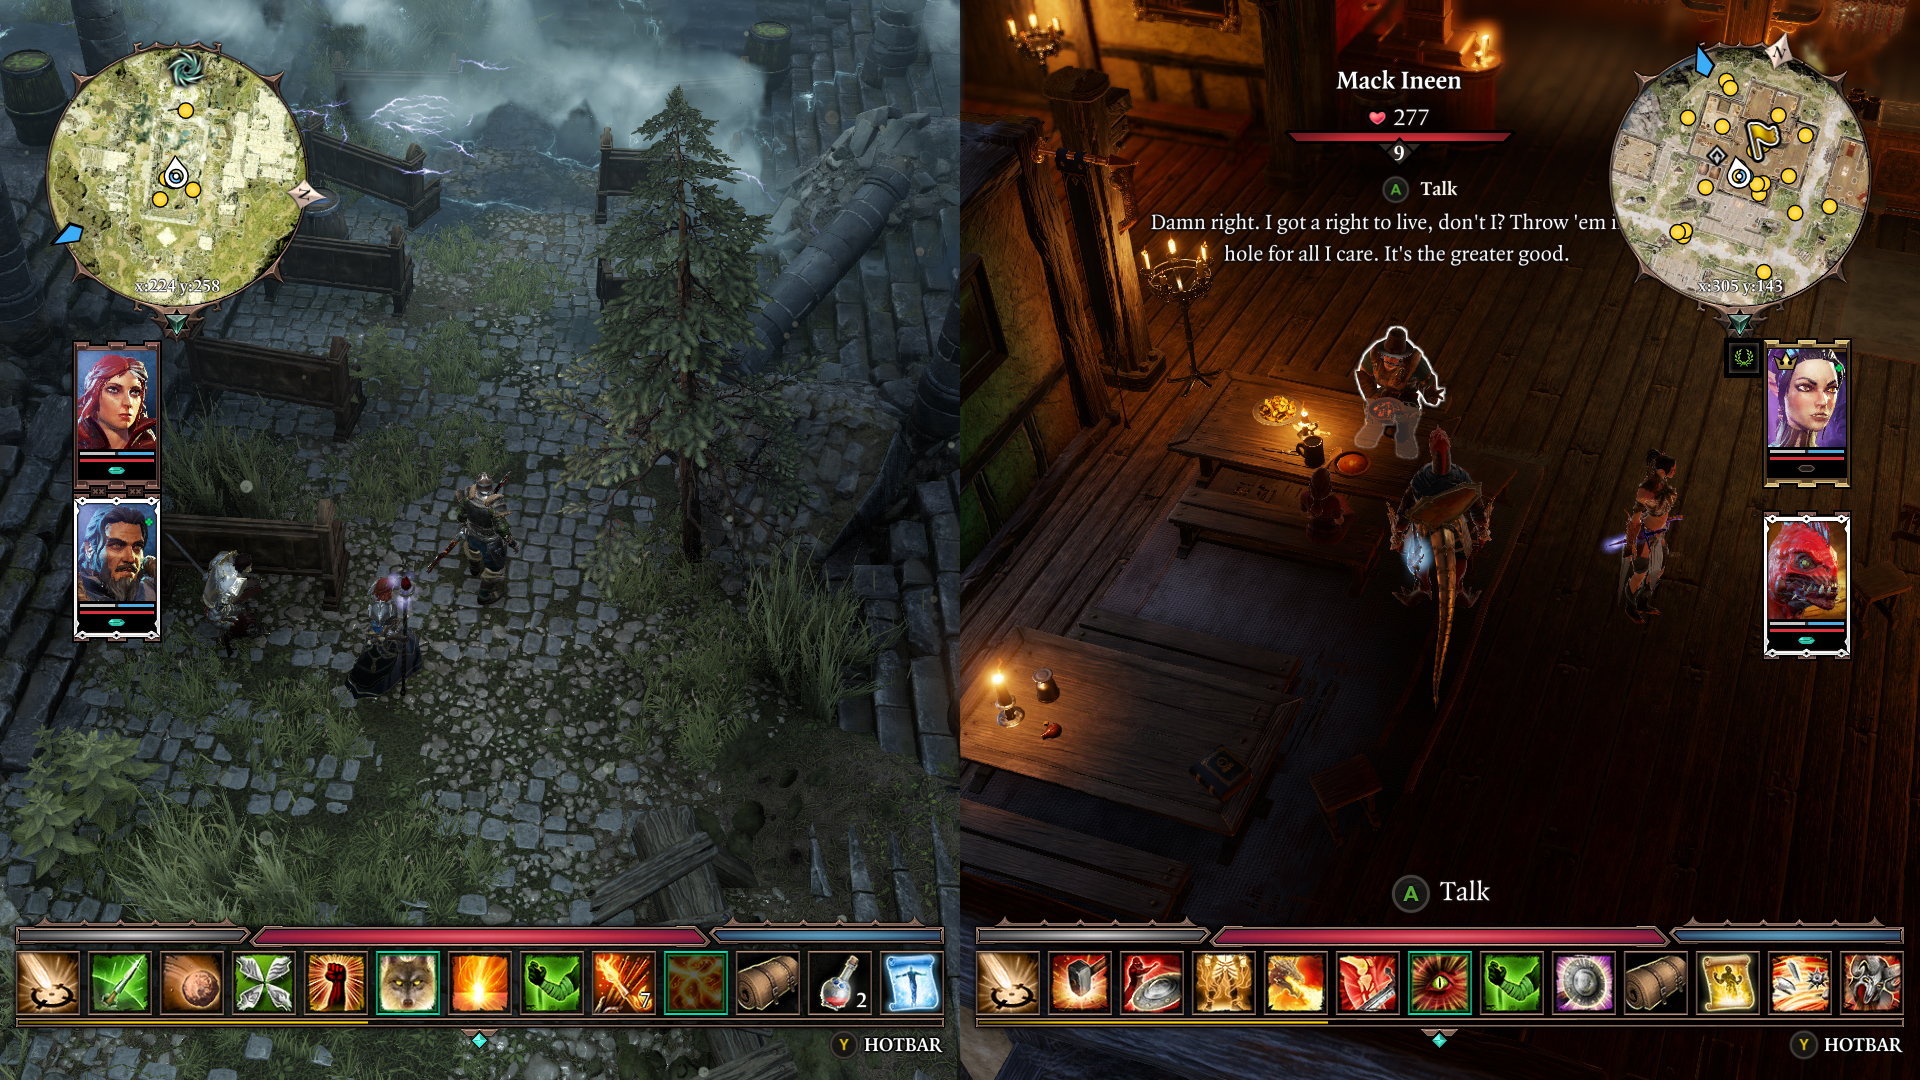 Divinity: Original Sin 2 - Definitive Edition review - Of